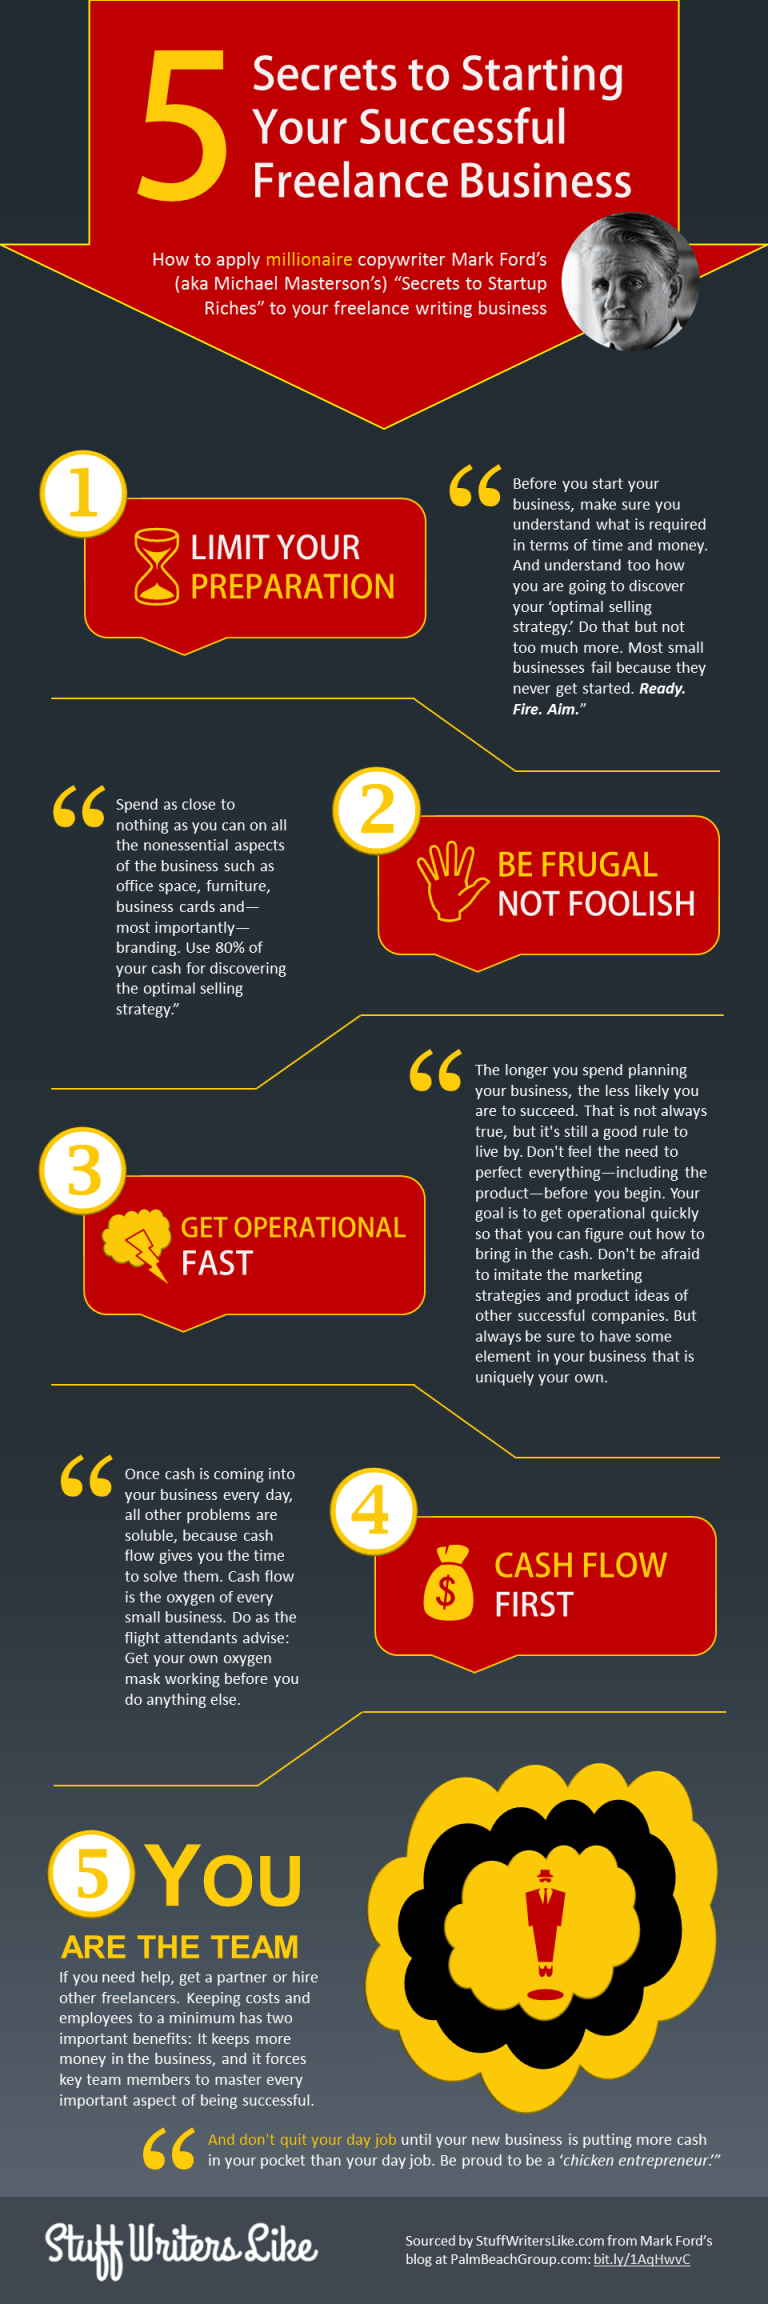 5 secrets start your successful freelance business [infographic]